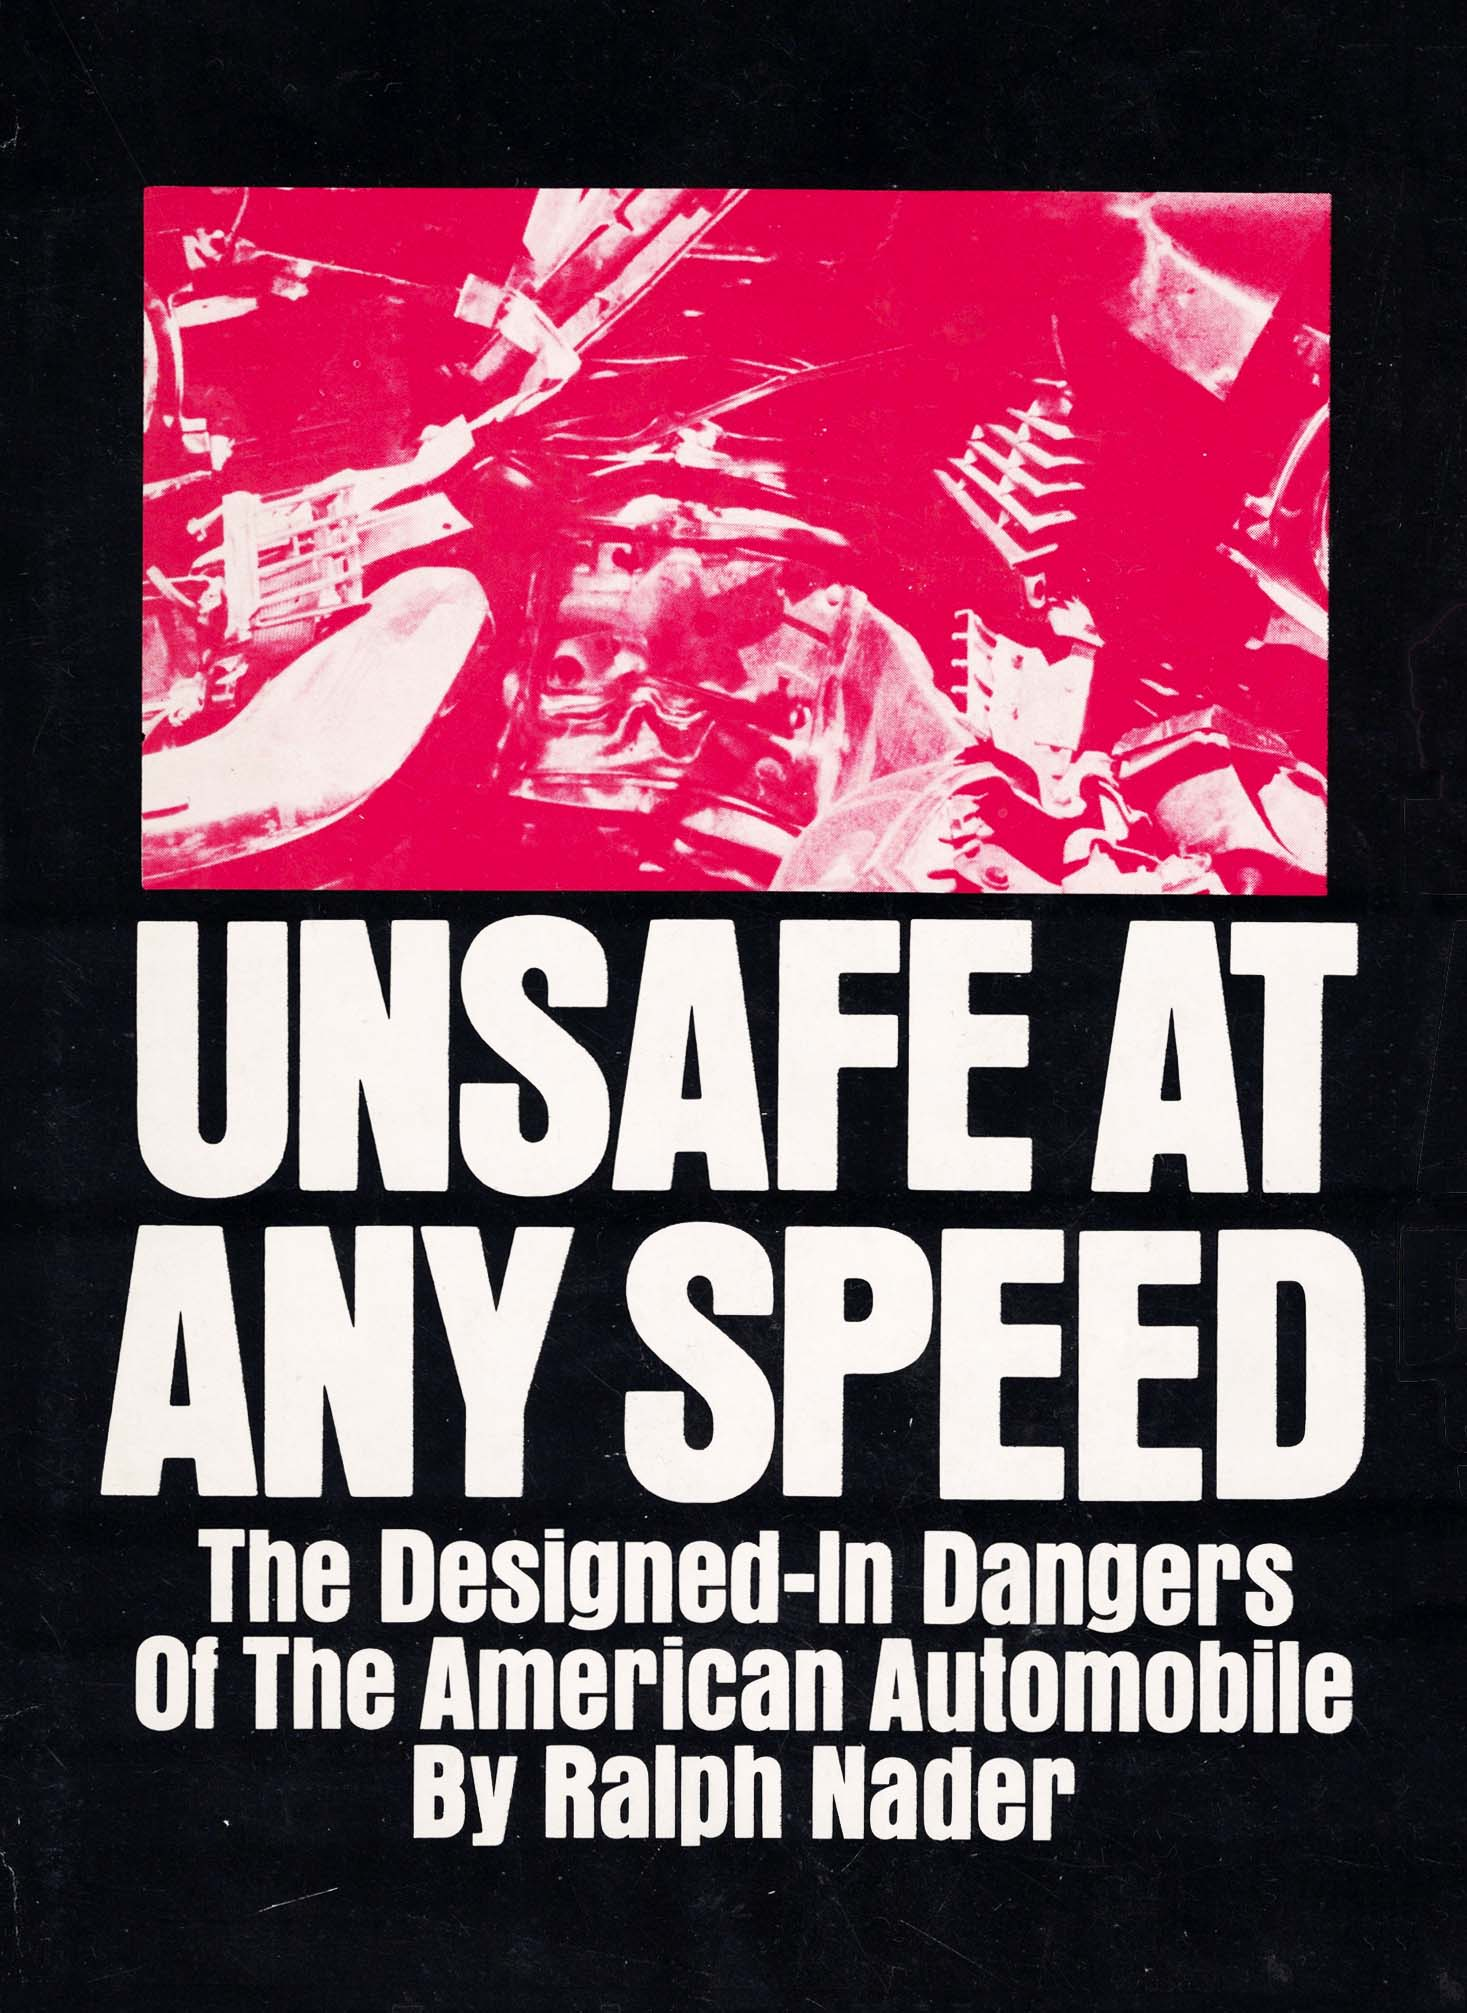 Records of the National Highway Traffic Safety Administration